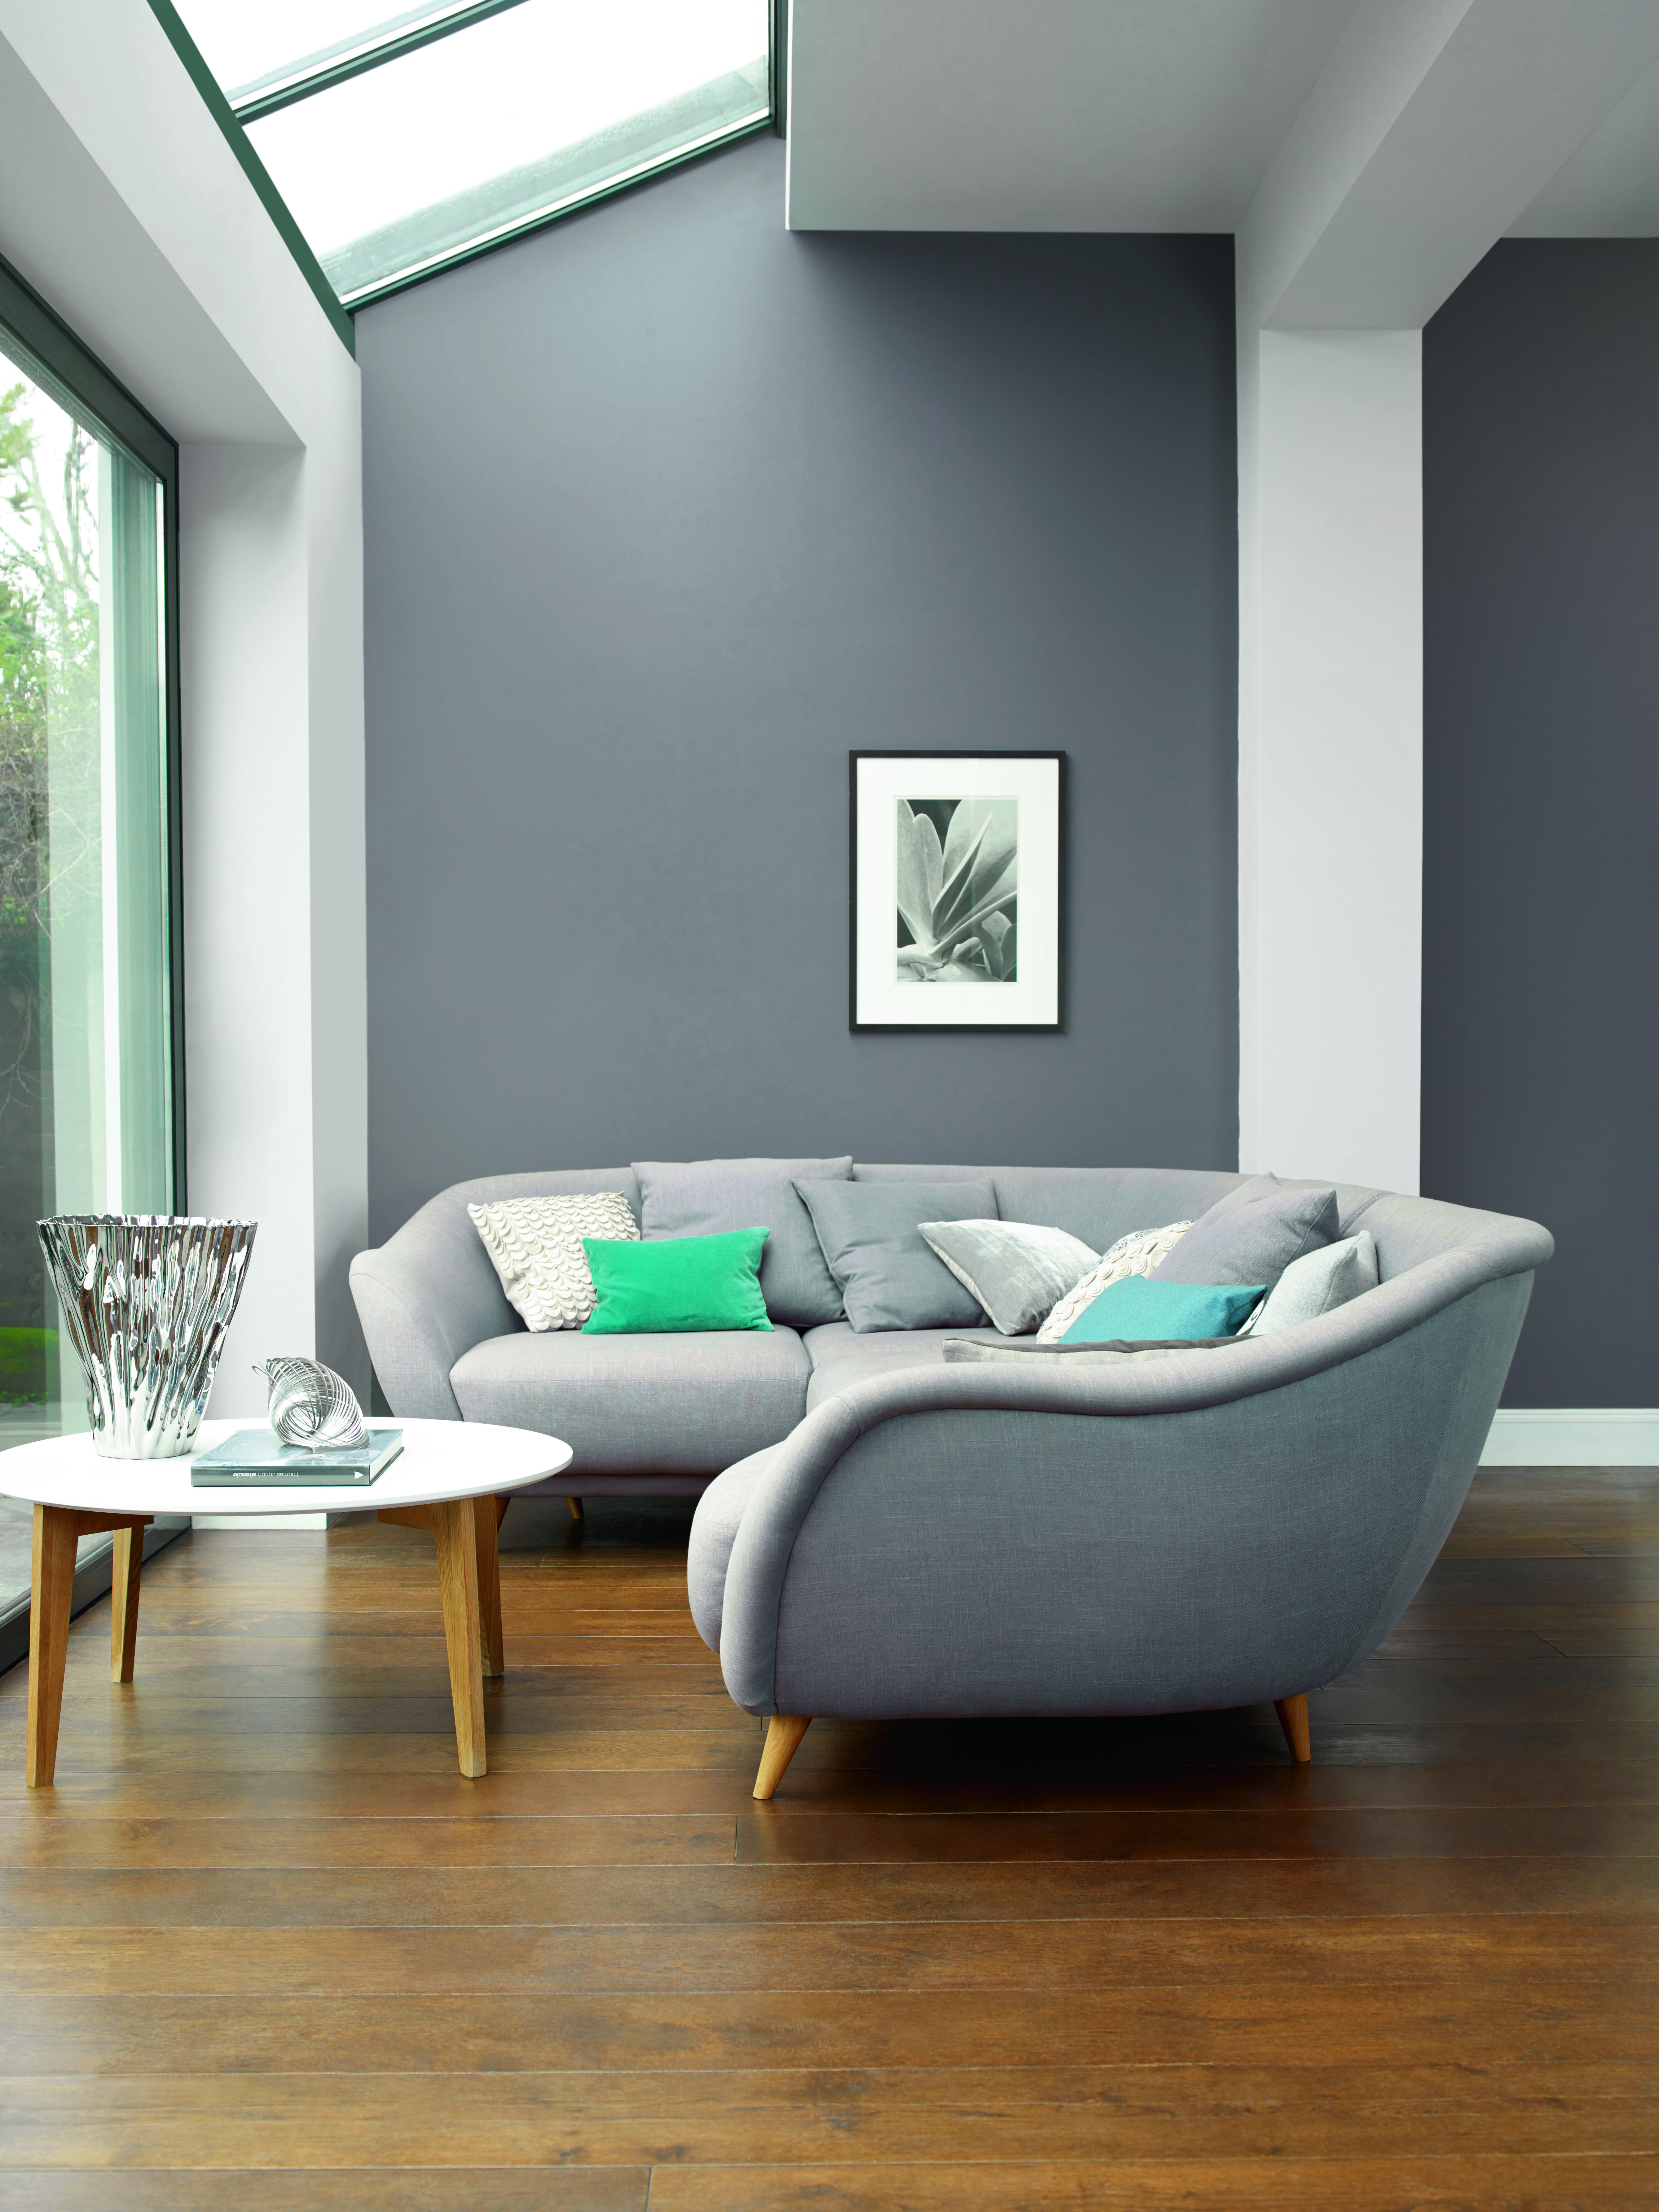 Living Room Decorating Ideas Gray Walls Home Decor For Modern 5 New Ways To Try With Grey From The Experts At Dulux More Visit Www Redonline Co Uk Stilnaya Seraya Gamma